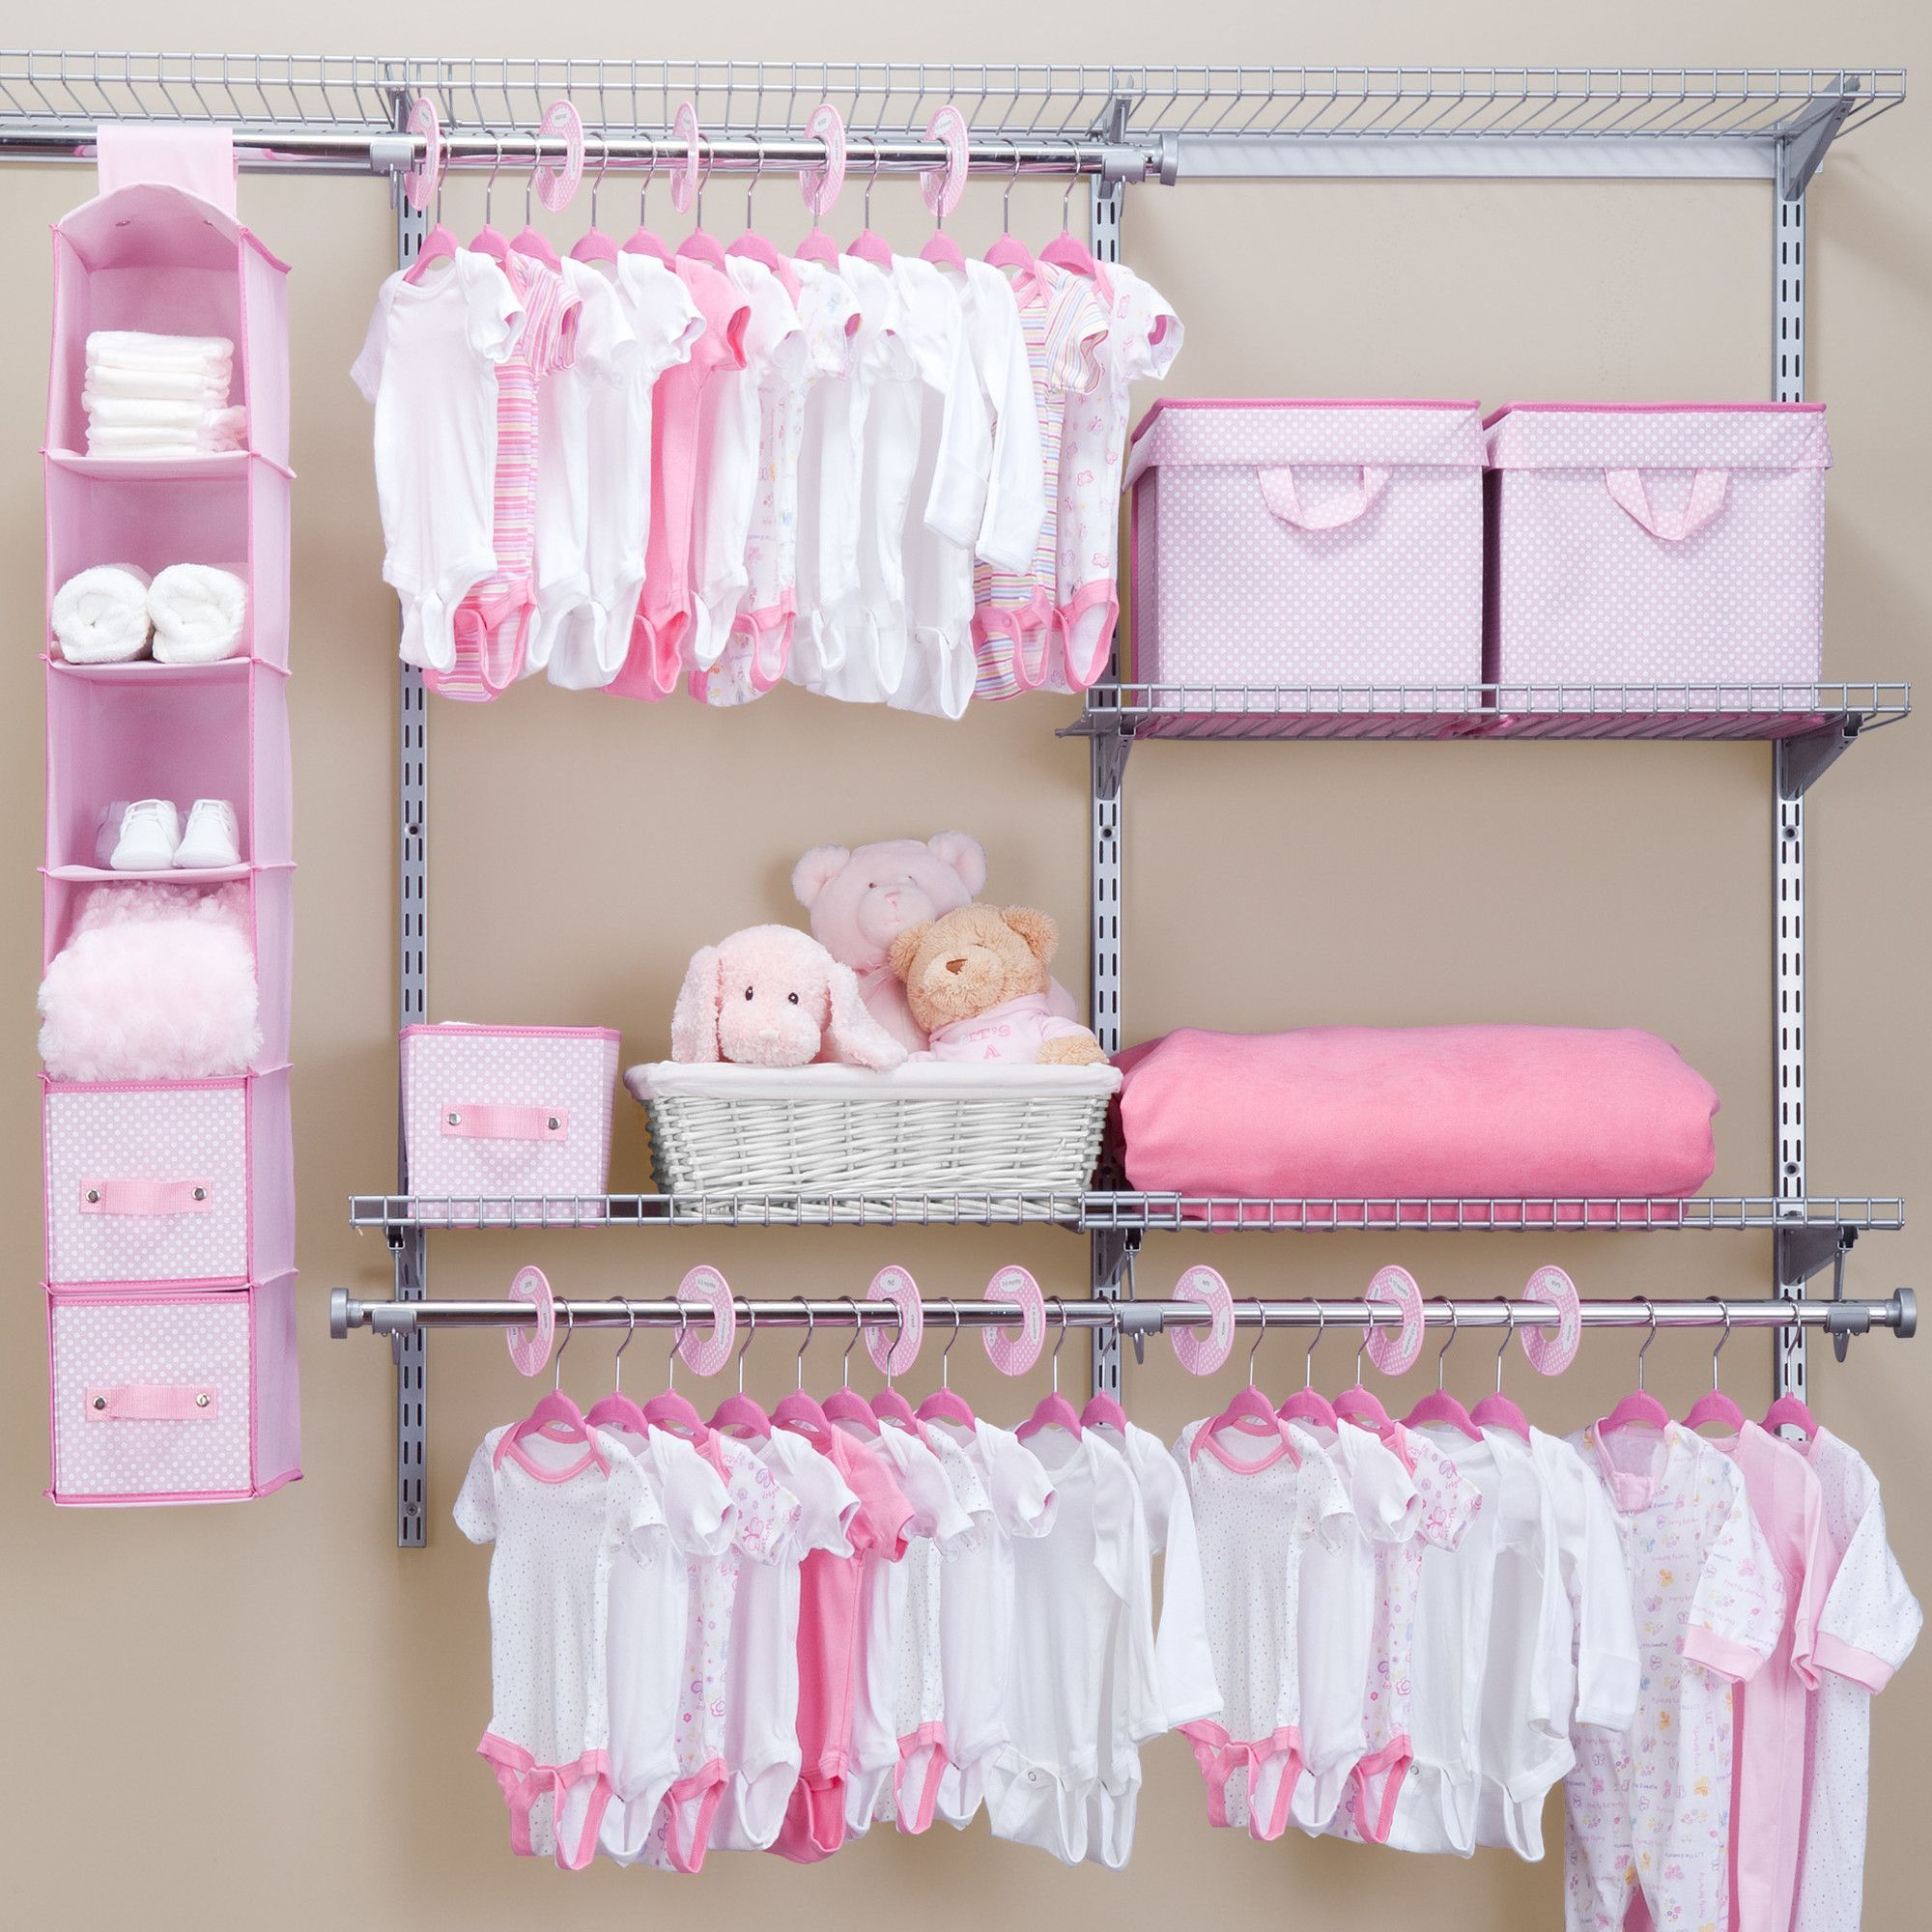 Features: -30 Slim-design, flocked-velvet hangers. -12 Closet dividers. -3 Small storage bins. -2 Large storage bins . -Six- shelf organizer. -Primary Material: Metal. Product Type: -Hanging Or